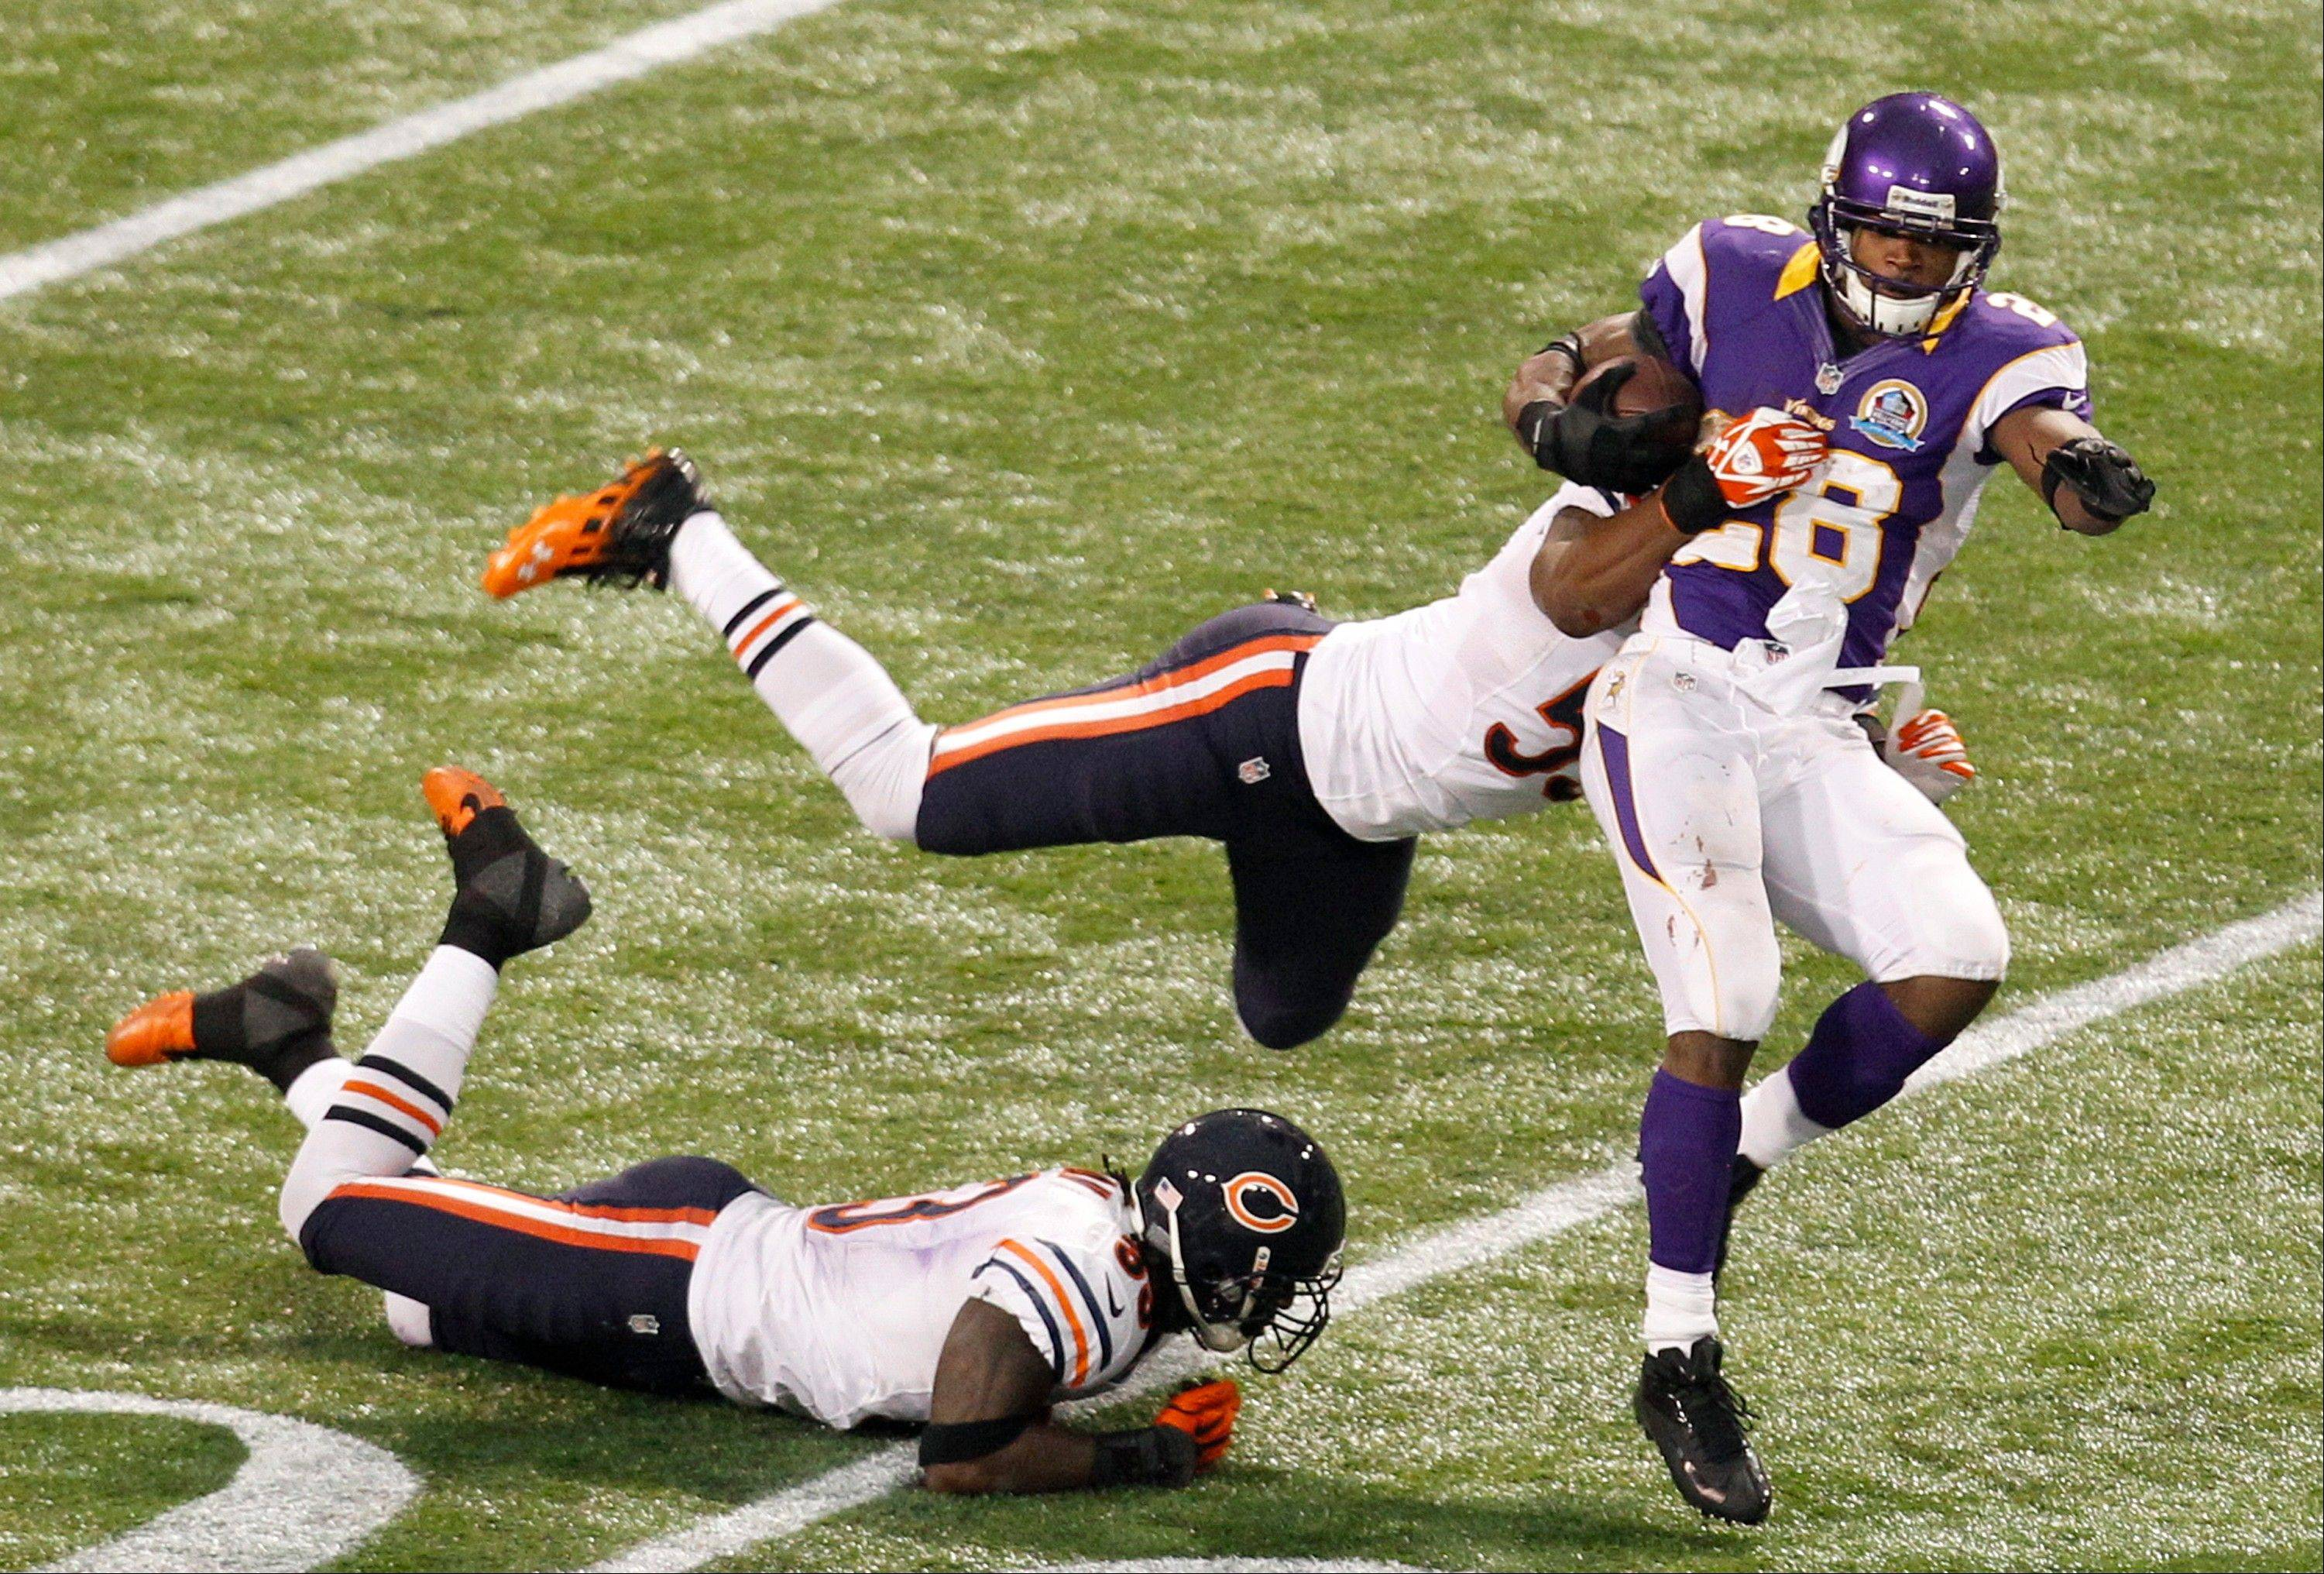 Minnesota Vikings running back Adrian Peterson, right, tries to break a tackle by Chicago Bears linebacker Nick Roach, center, and cornerback Charles Tillman, left, during the second half.